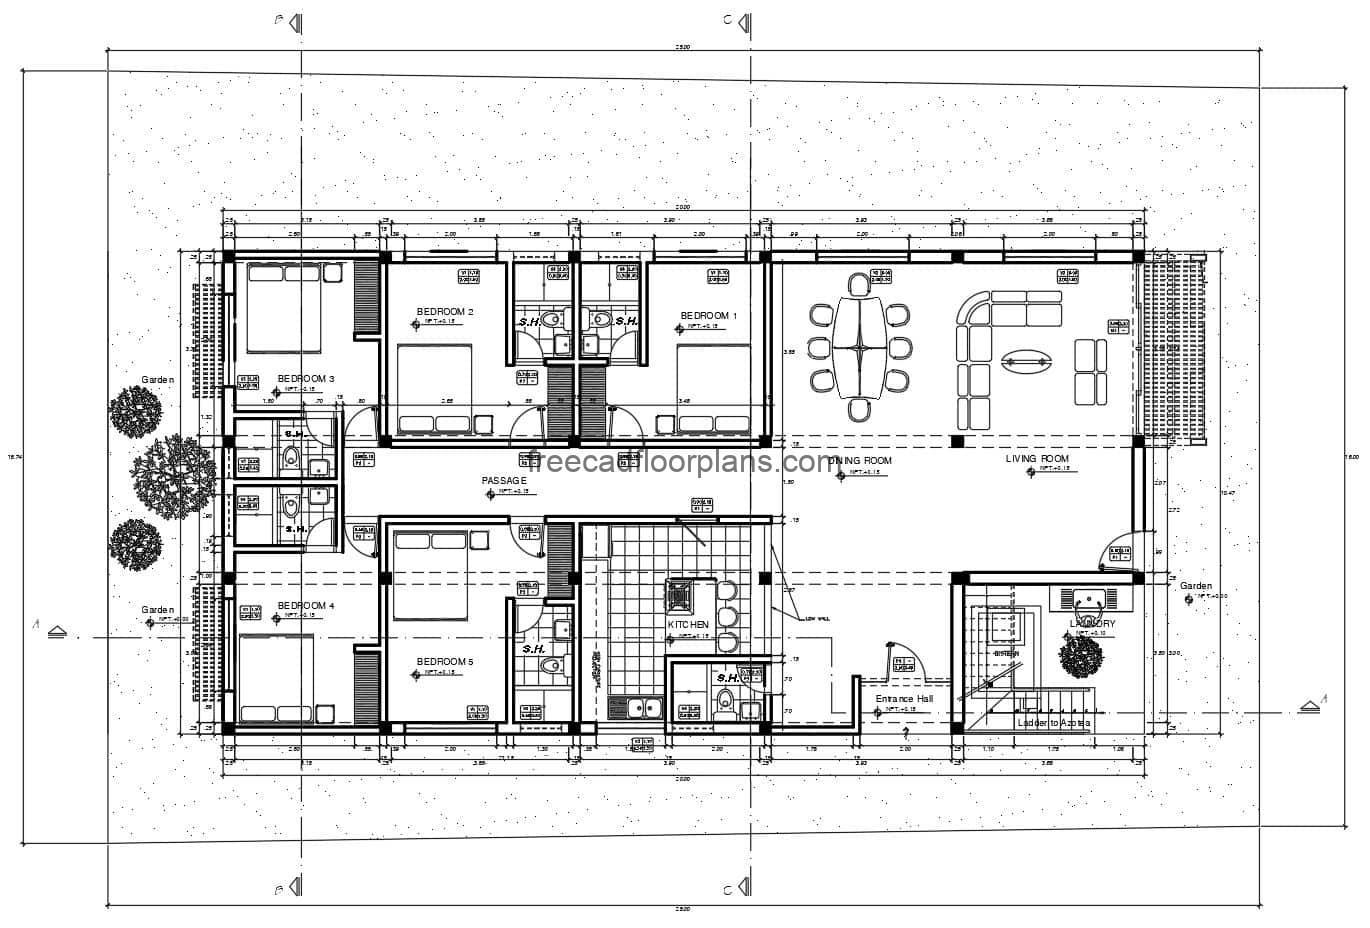 beach house architectural plans with fully editable autocad blocks